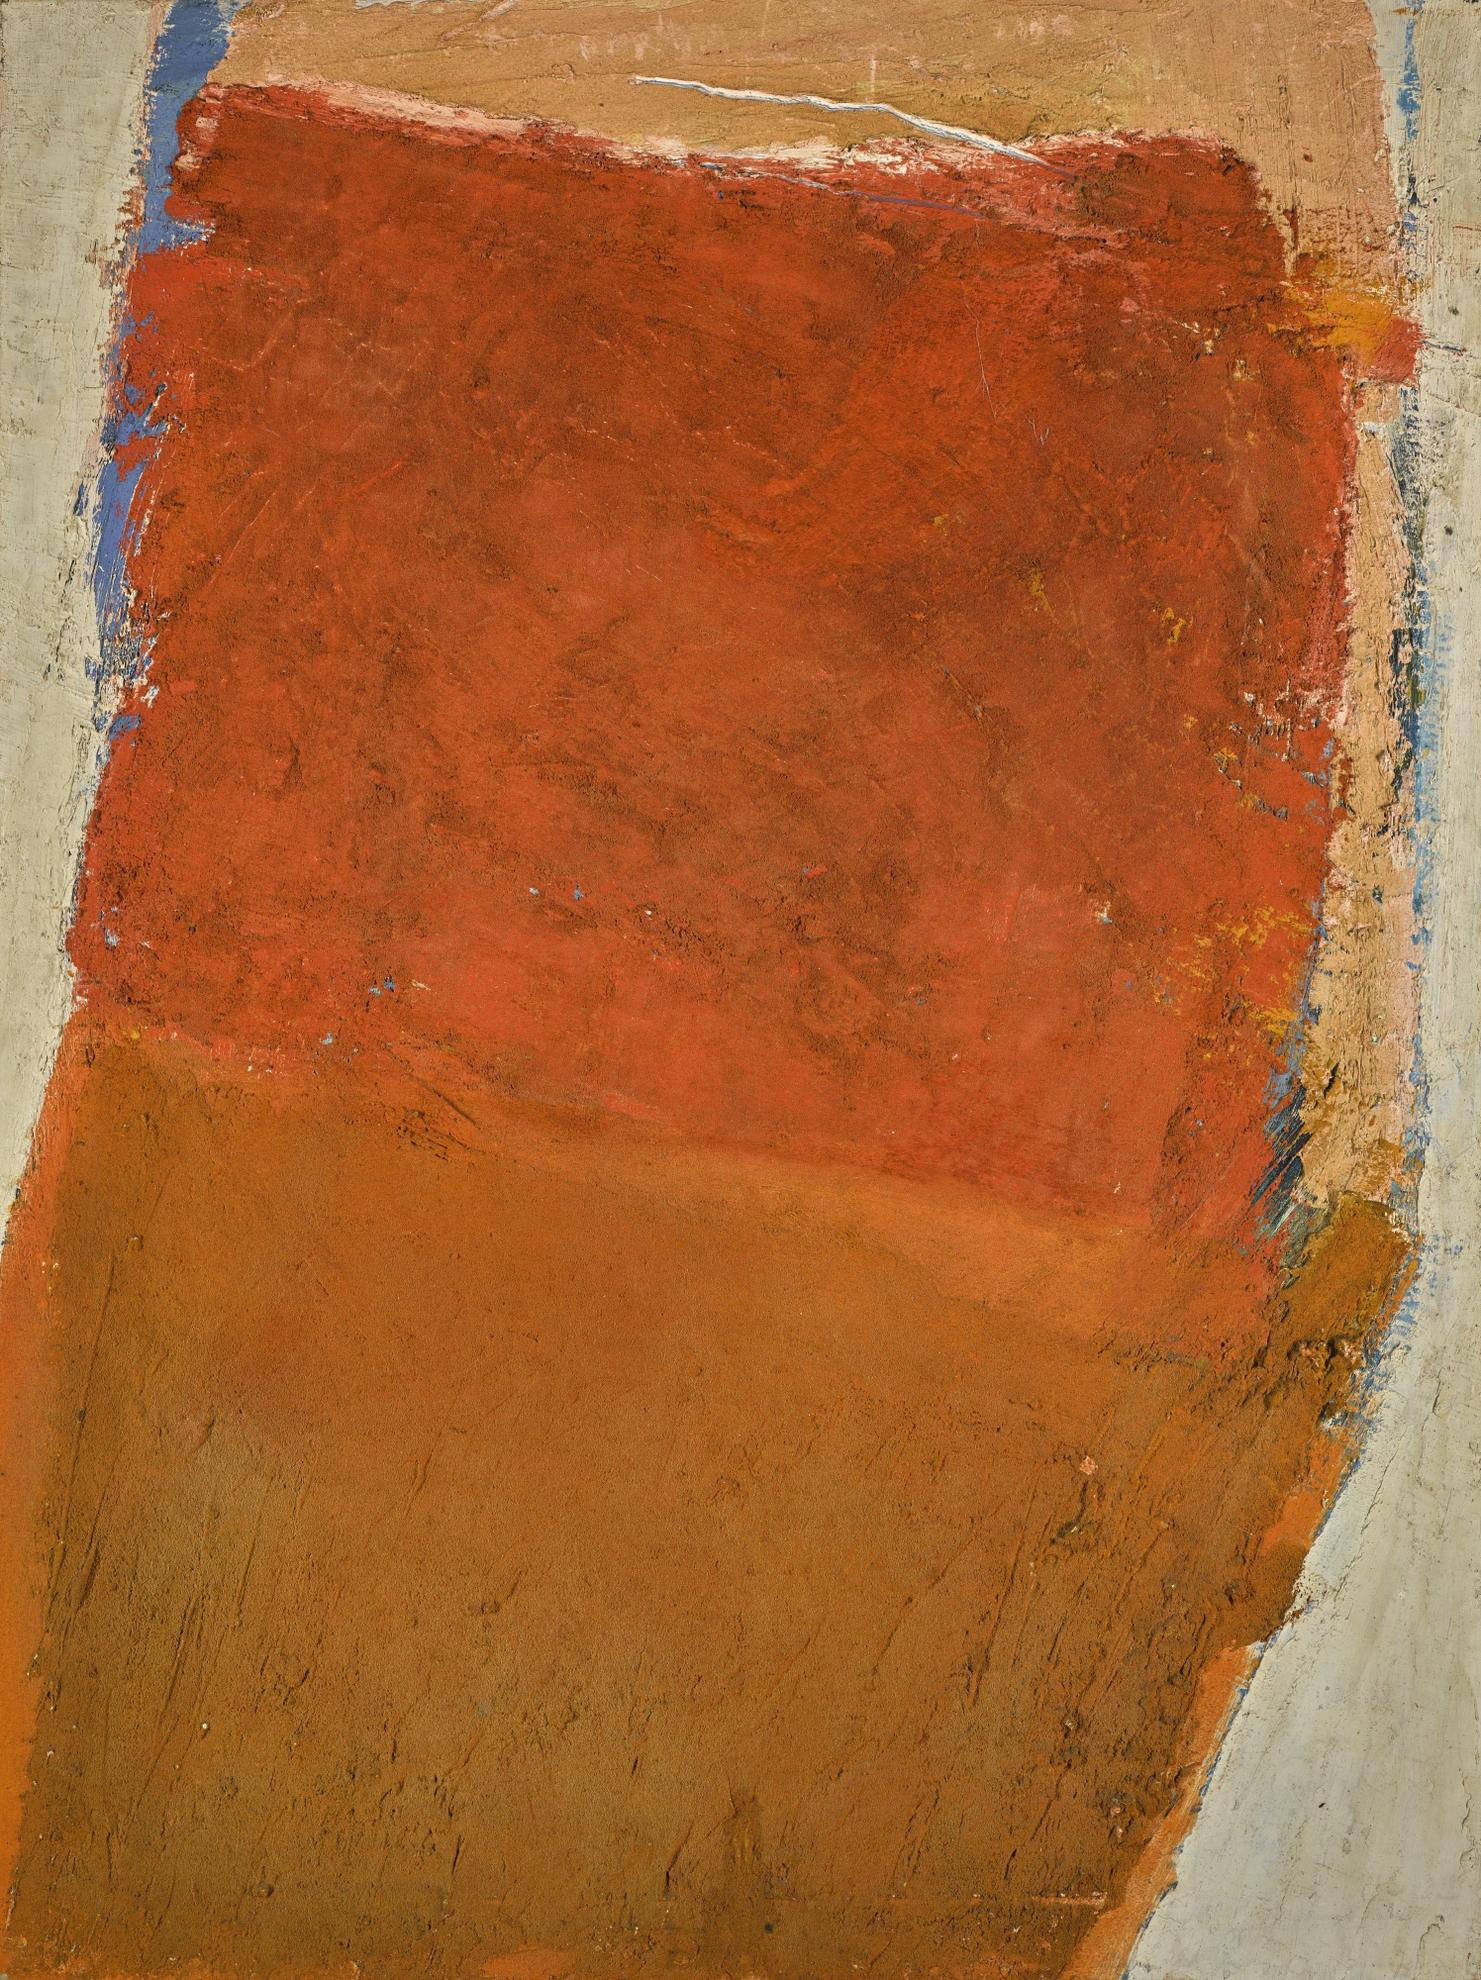 Joe Tilson-Summer 1959 No 2-1959